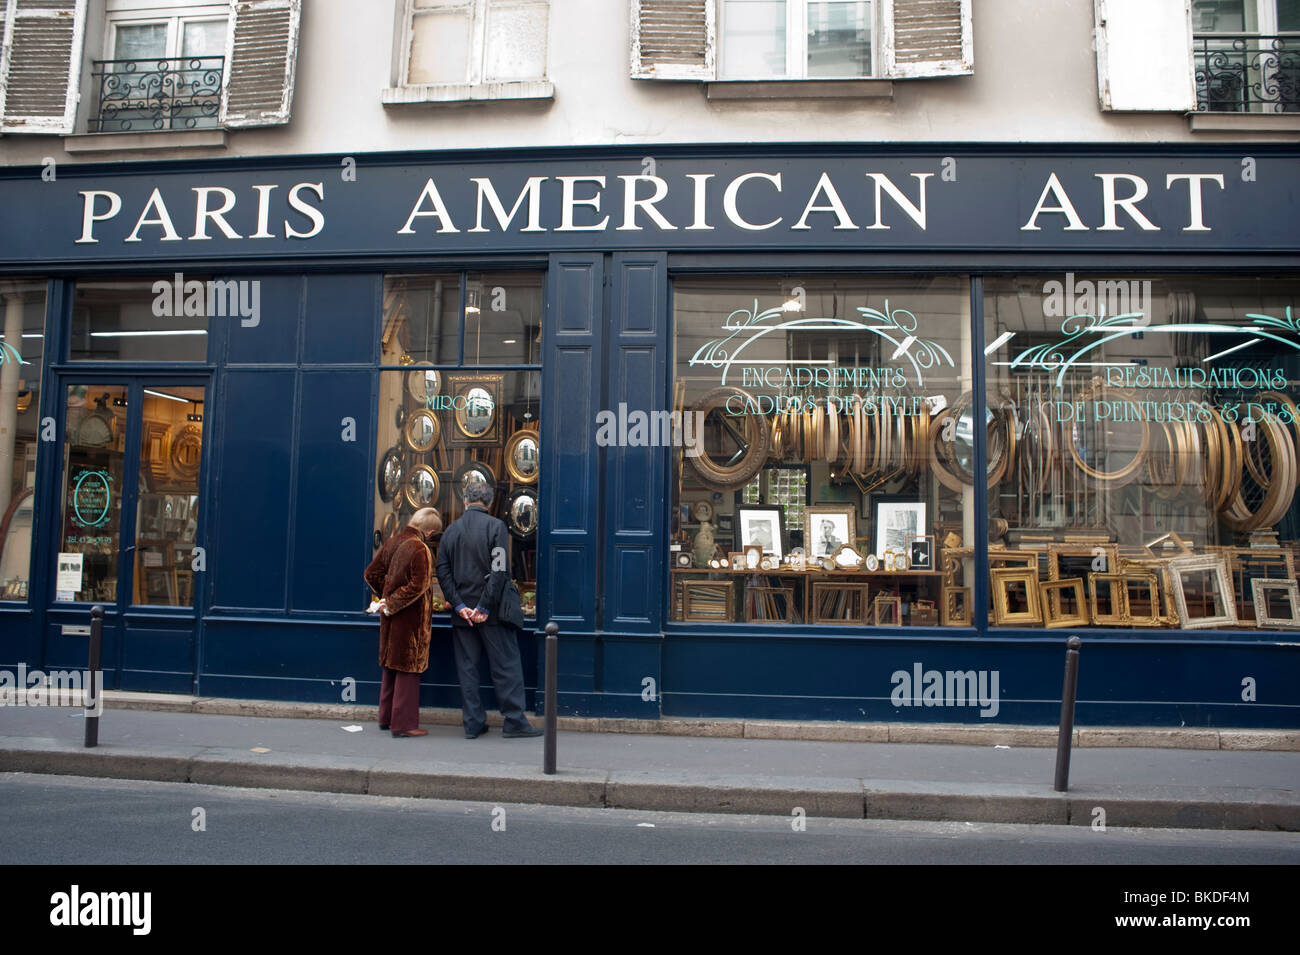 couple window shopping picture framing store in latin quarter paris american art seniors outside storefront shop front name has now been changed